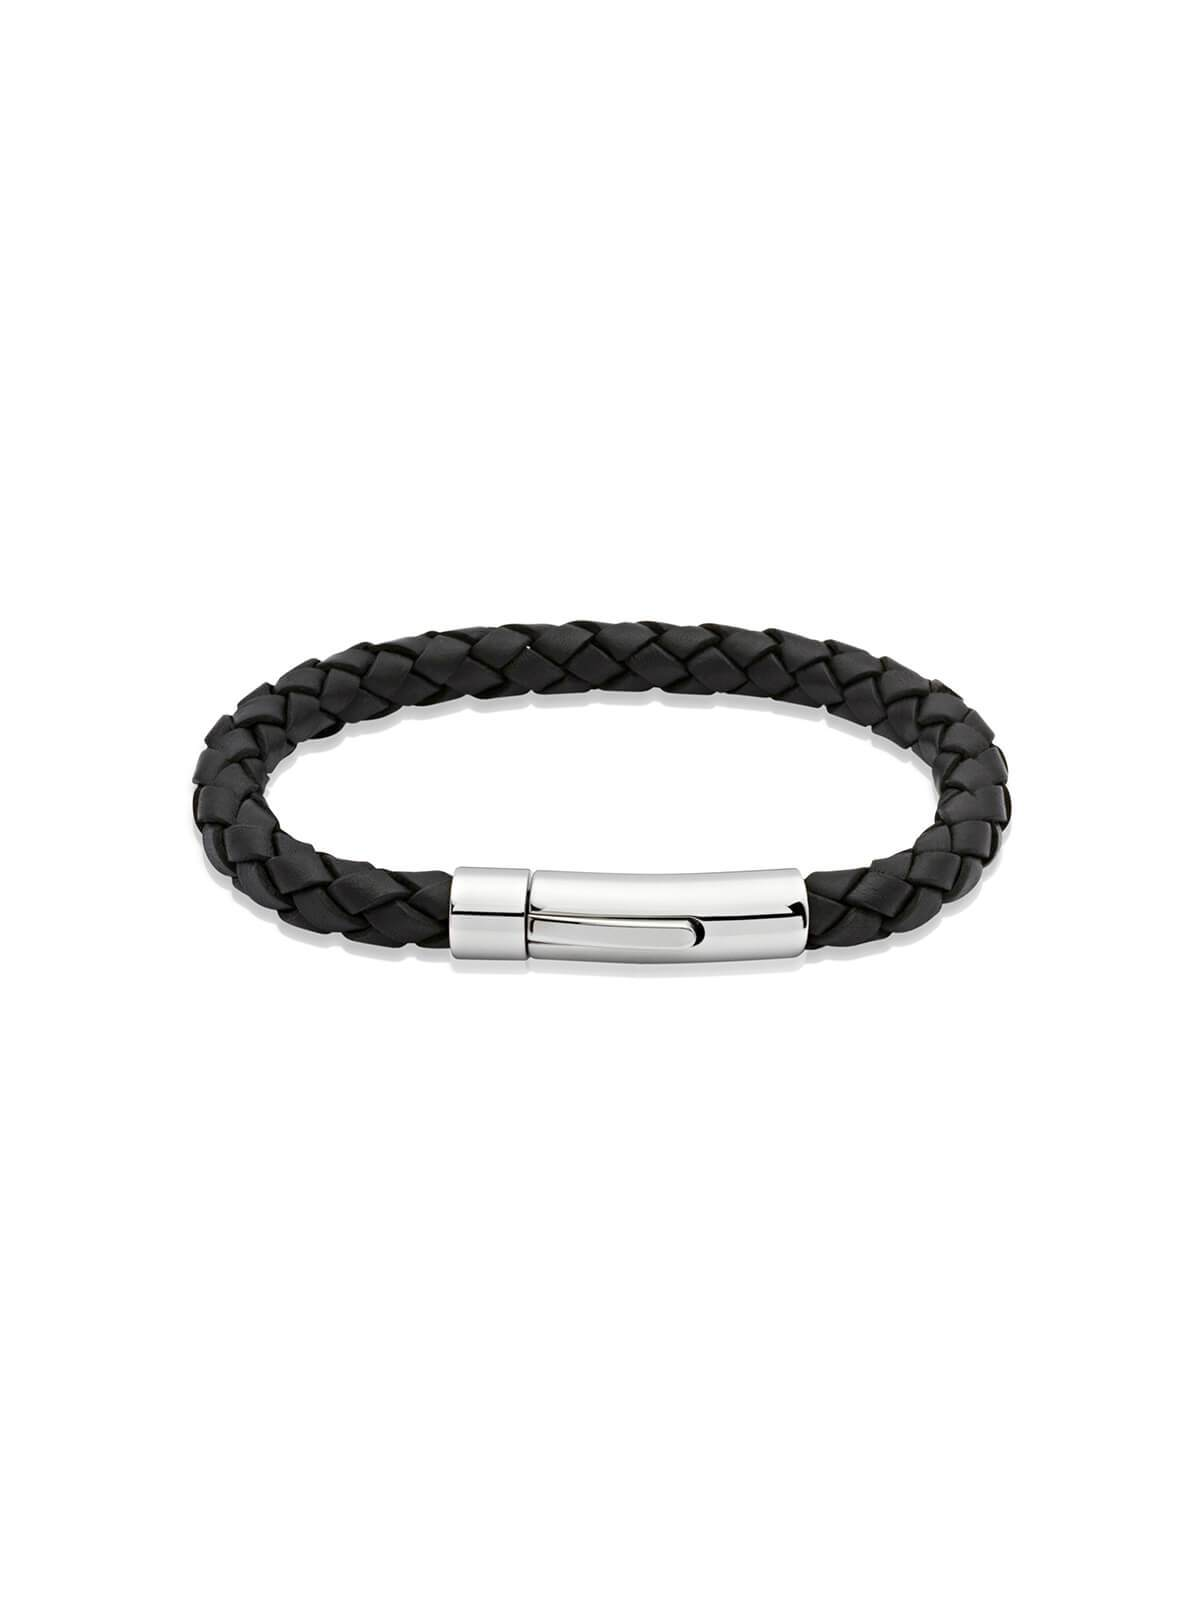 Unique & Co. 23cm Black Leather Bracelet A40BL/23CM